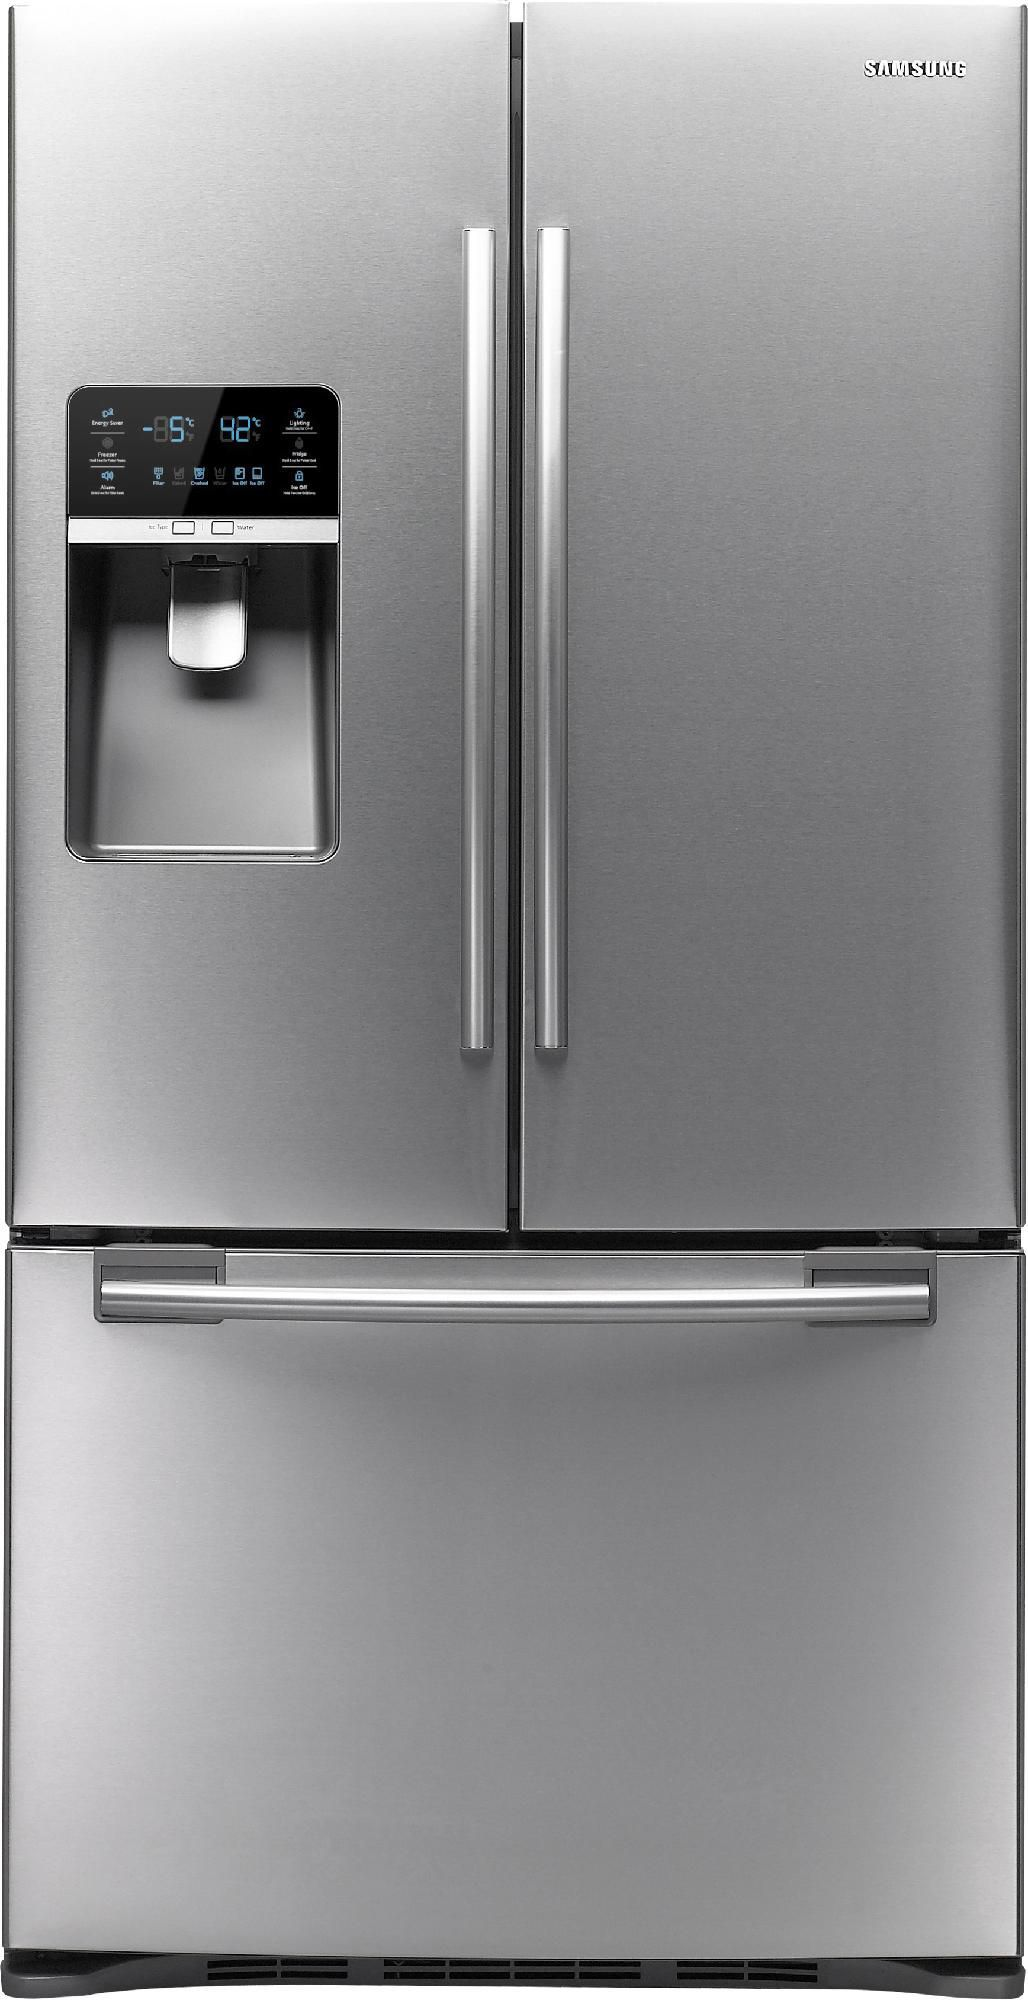 Samsung 29 Cu Ft Bottom Freezer Refrigerator Stainless